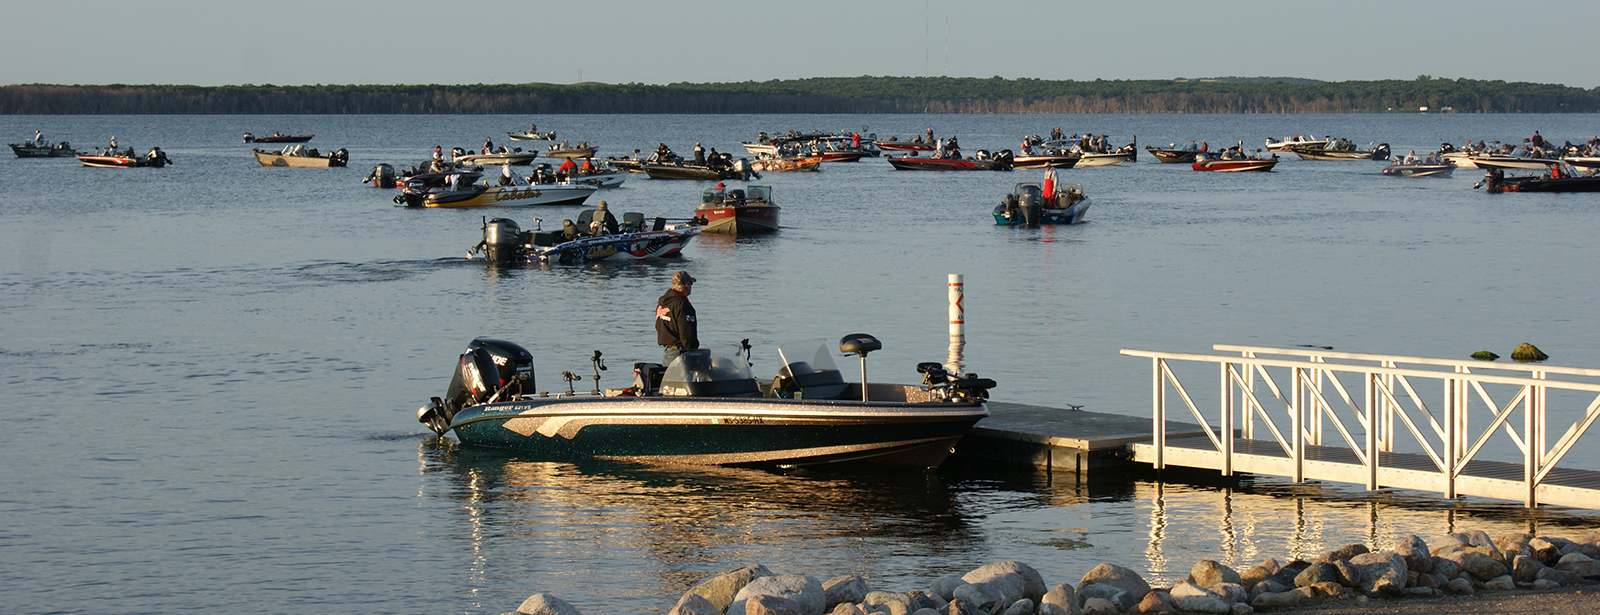 Tournament Boats on Devils Lake